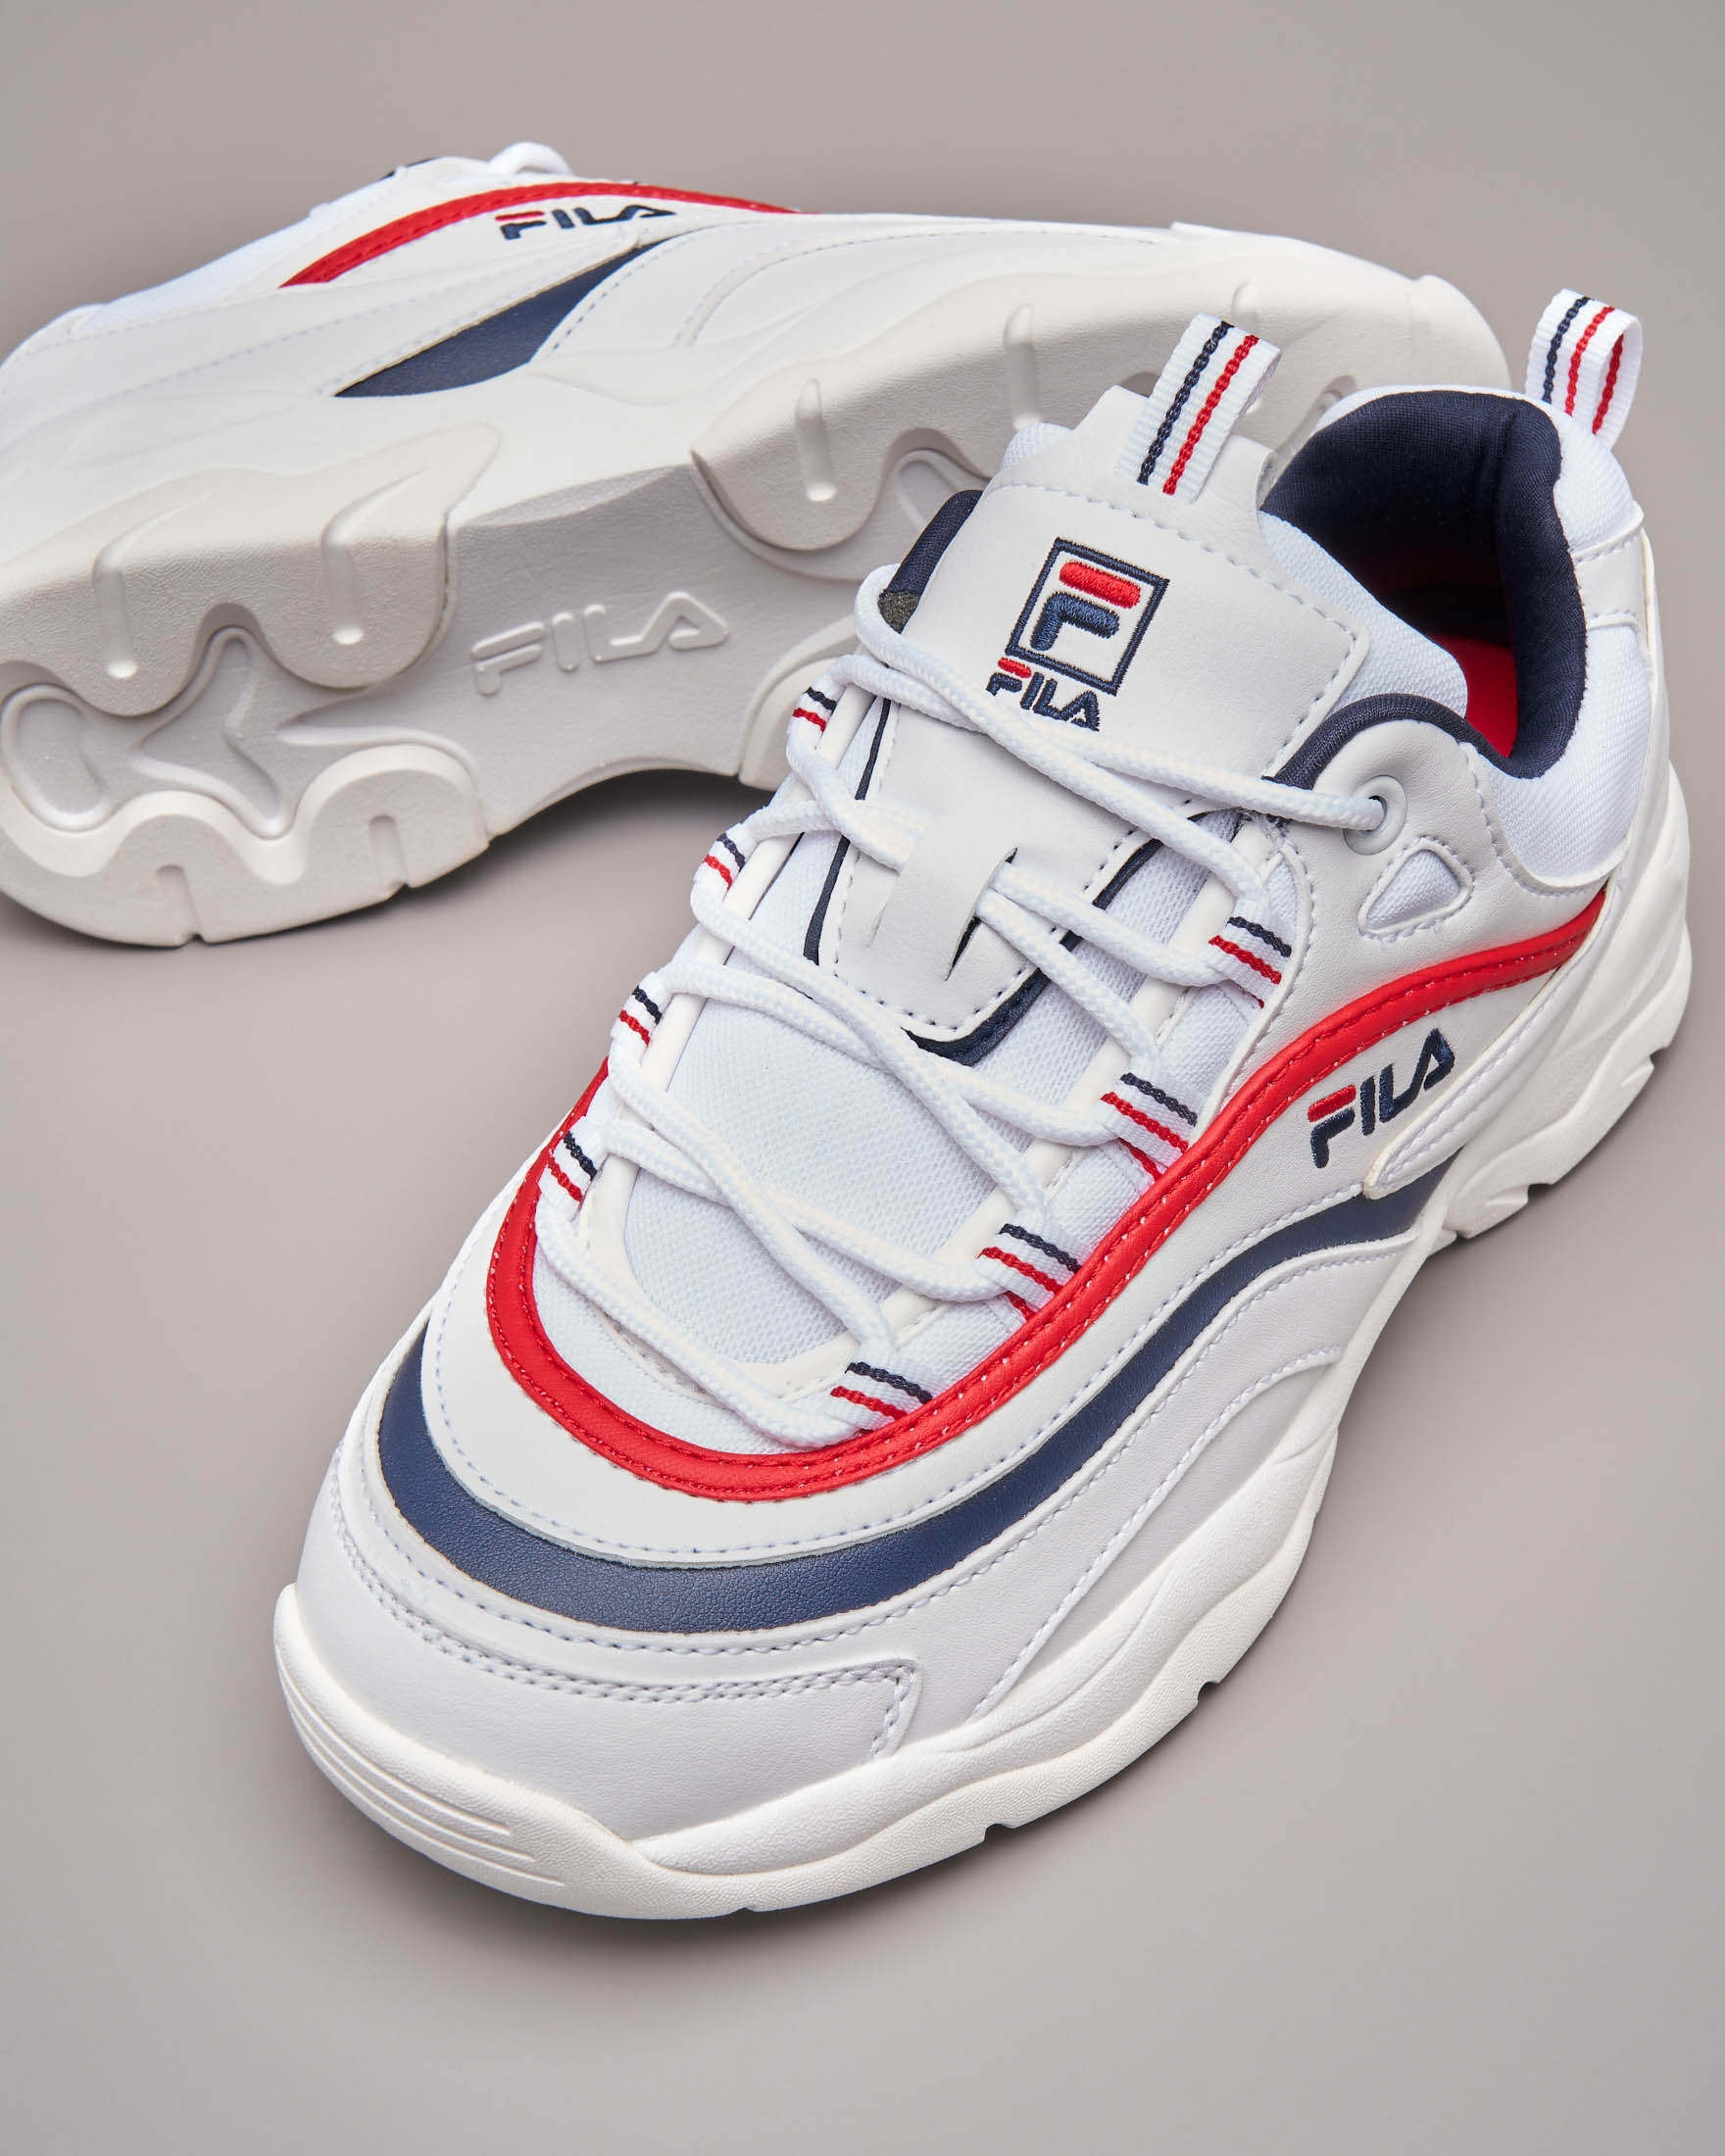 Sneaker Fila Ray low bianche con rifiniture rosse e blu | Pellizzari E-commerce